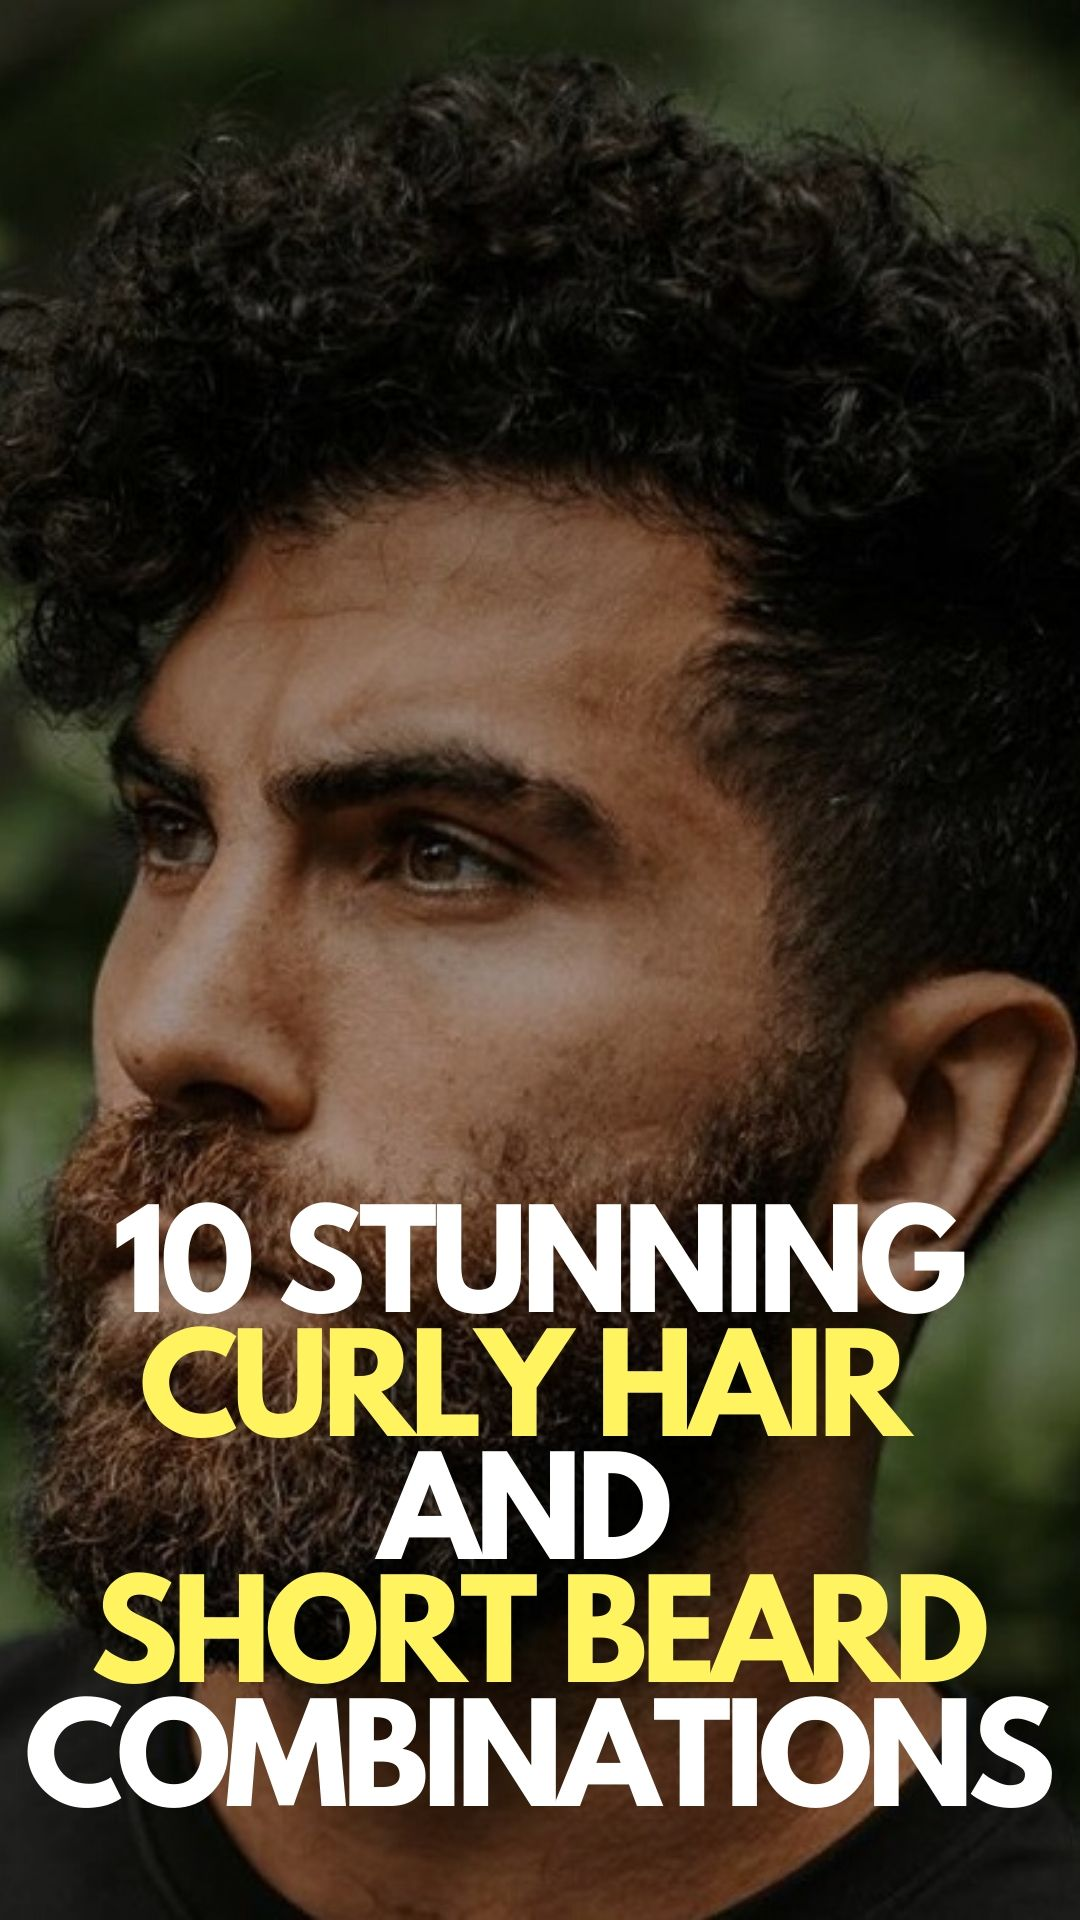 CURLY HAIR AND SHORT BEARD COMBO